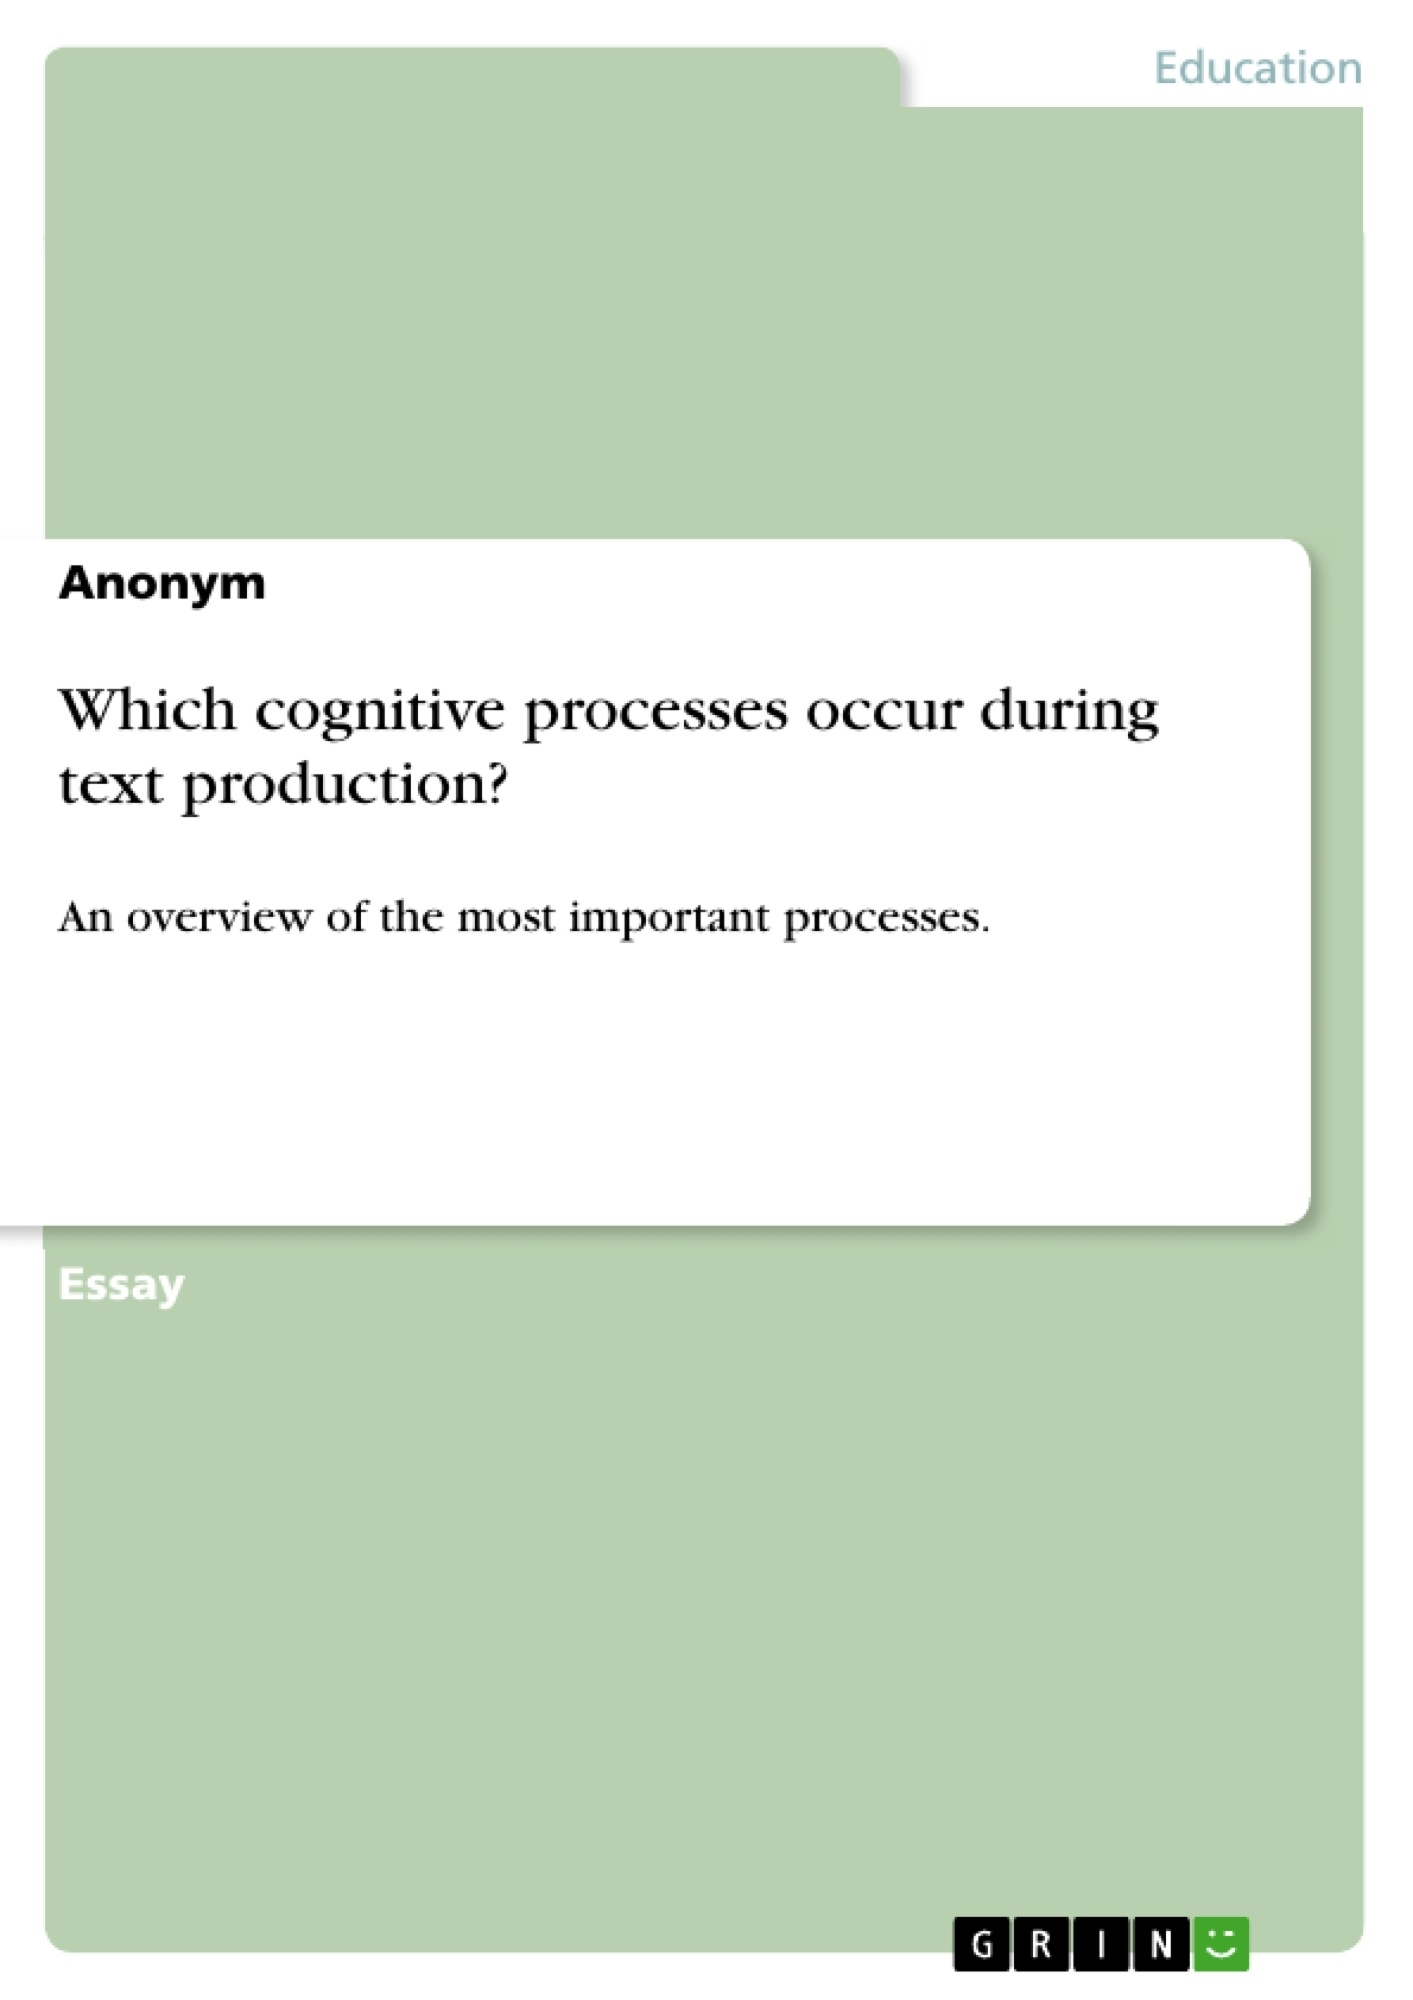 Title: Which cognitive processes occur during text production?